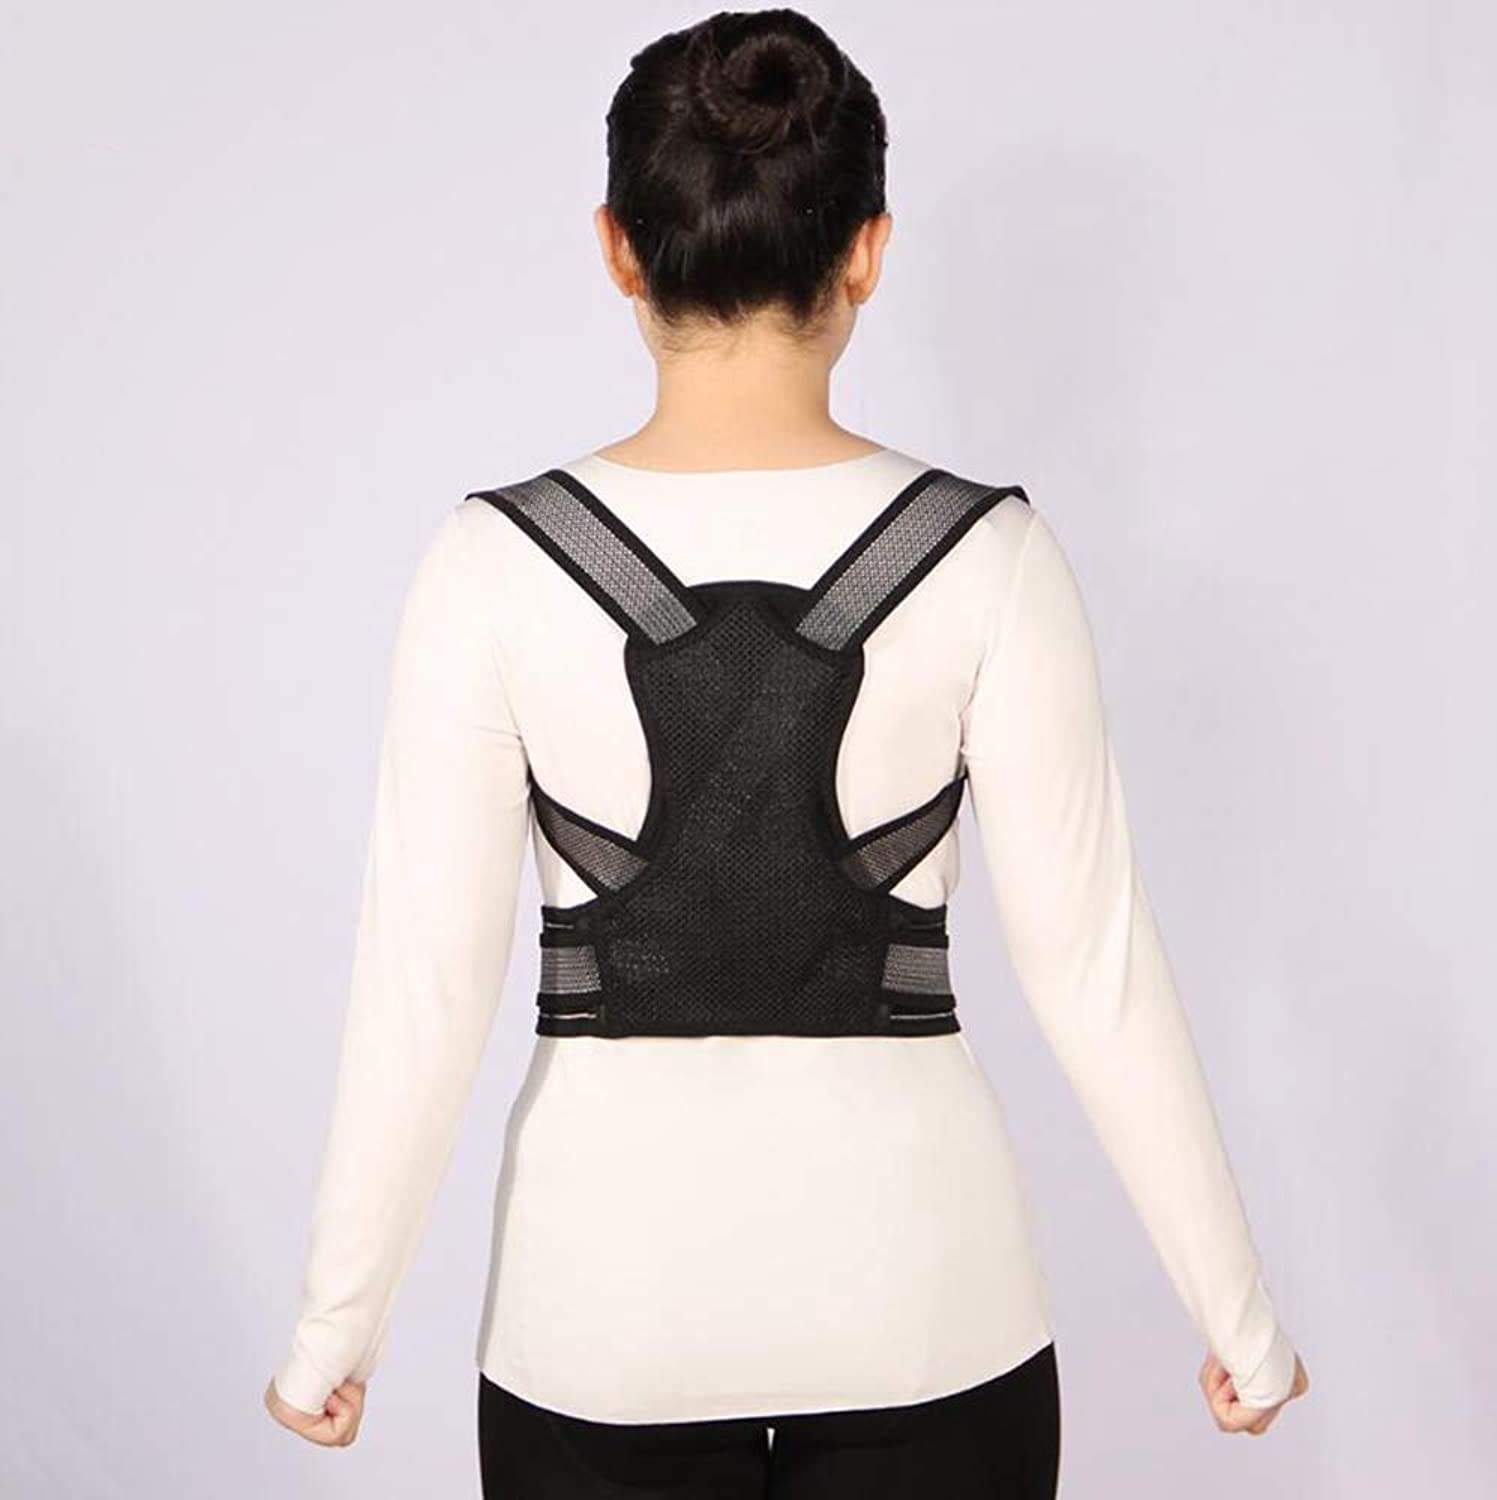 UltraThin Adult Kyphosis Correction Belt, ZhongshanStyle Correction with Hunchback Correction Belt, Relieve Pain Correction of The Back Joint